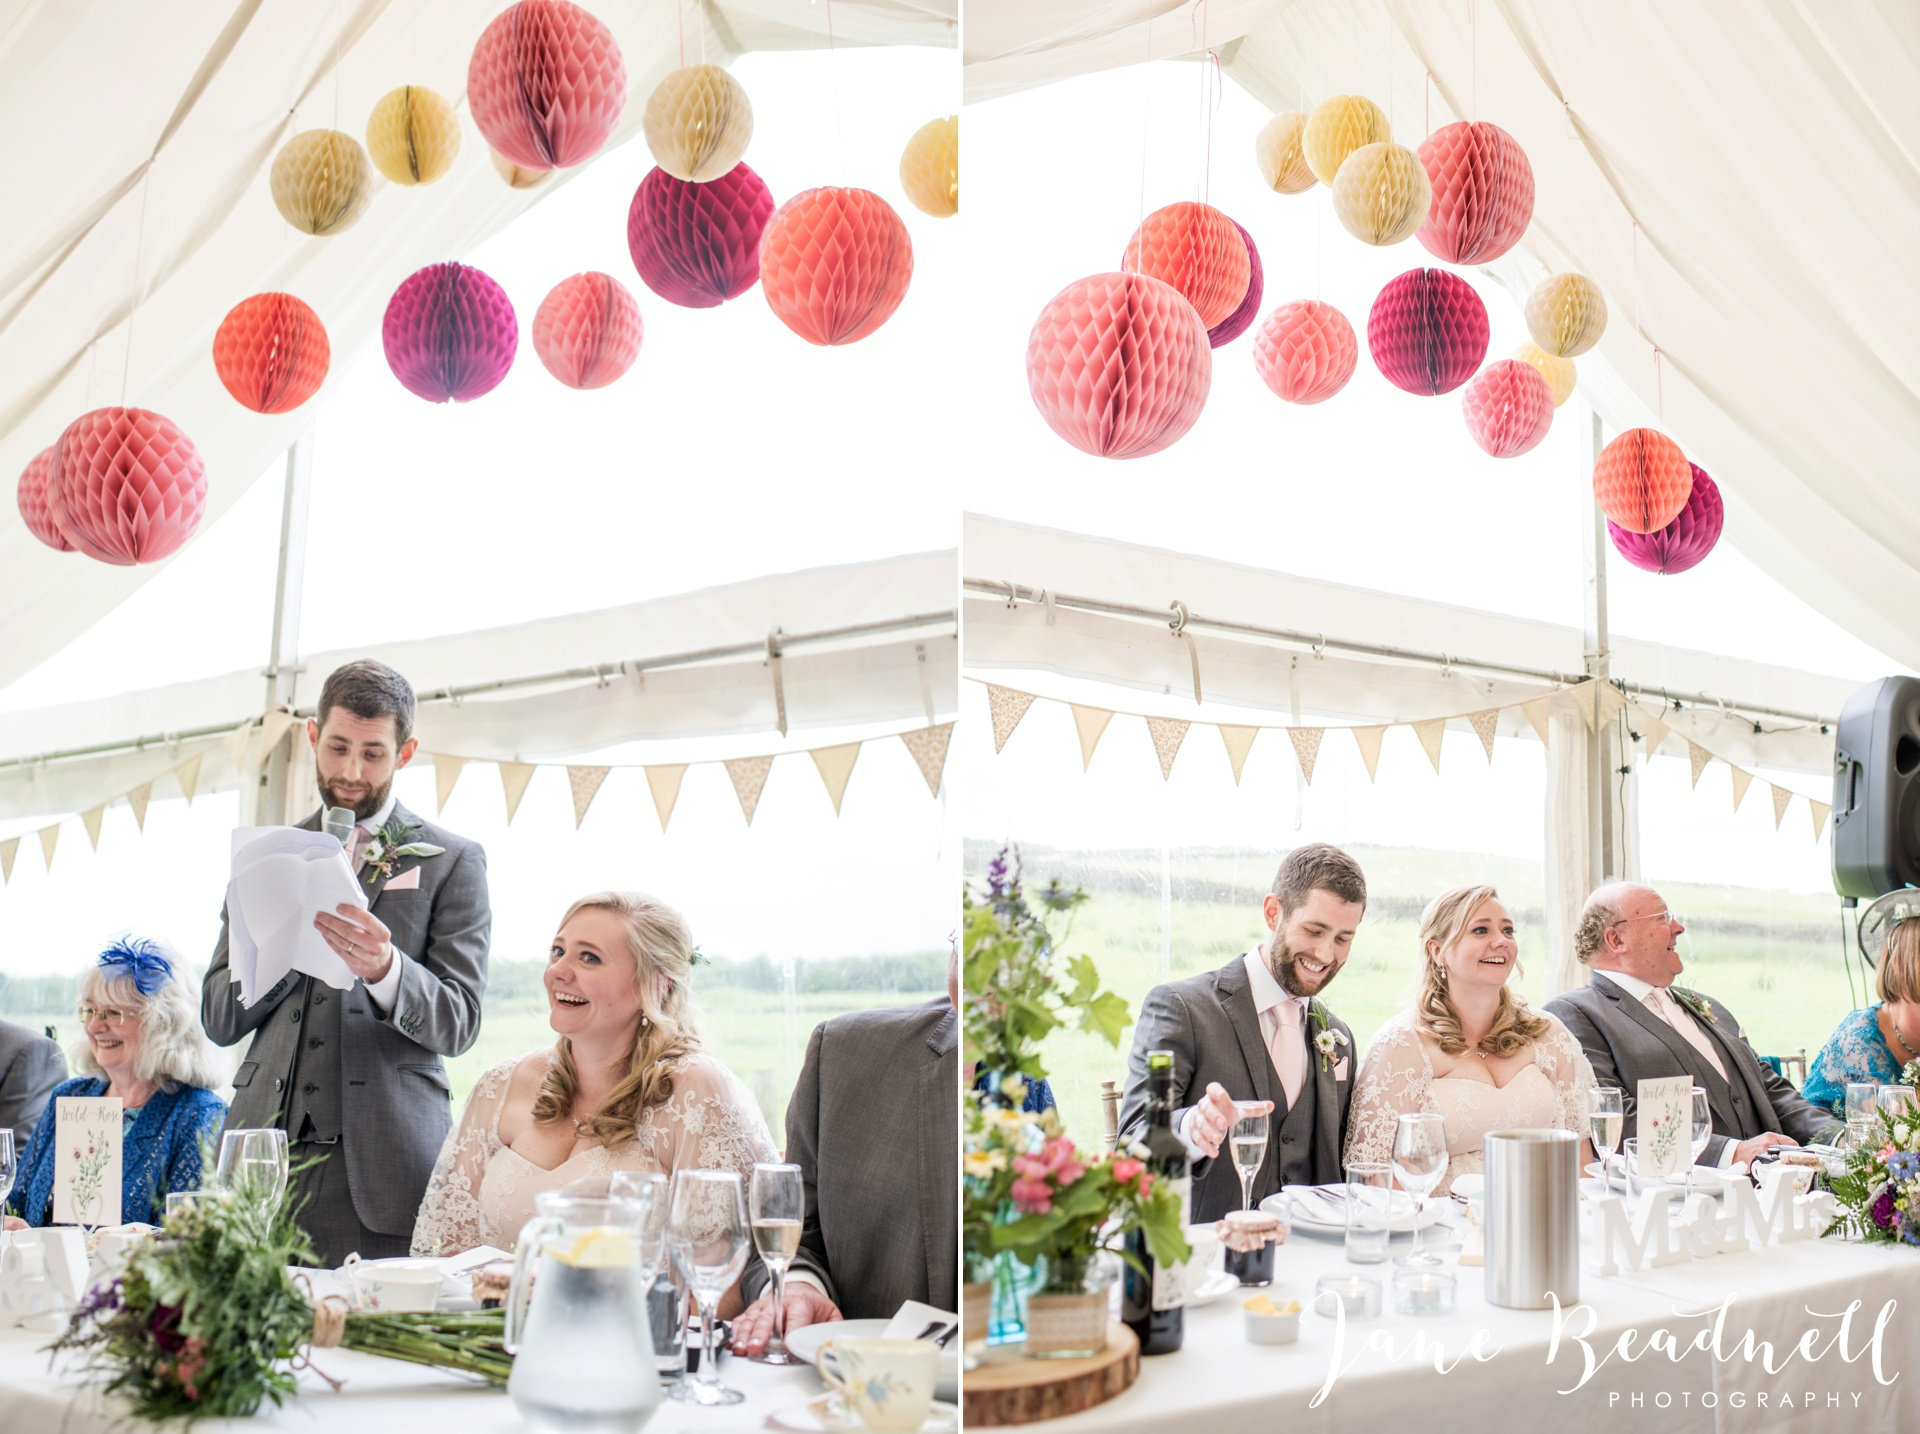 Yorkshire Wedding Photography the cheerful Chilli Barn Wedding by Jane Beadnell Photography_0178